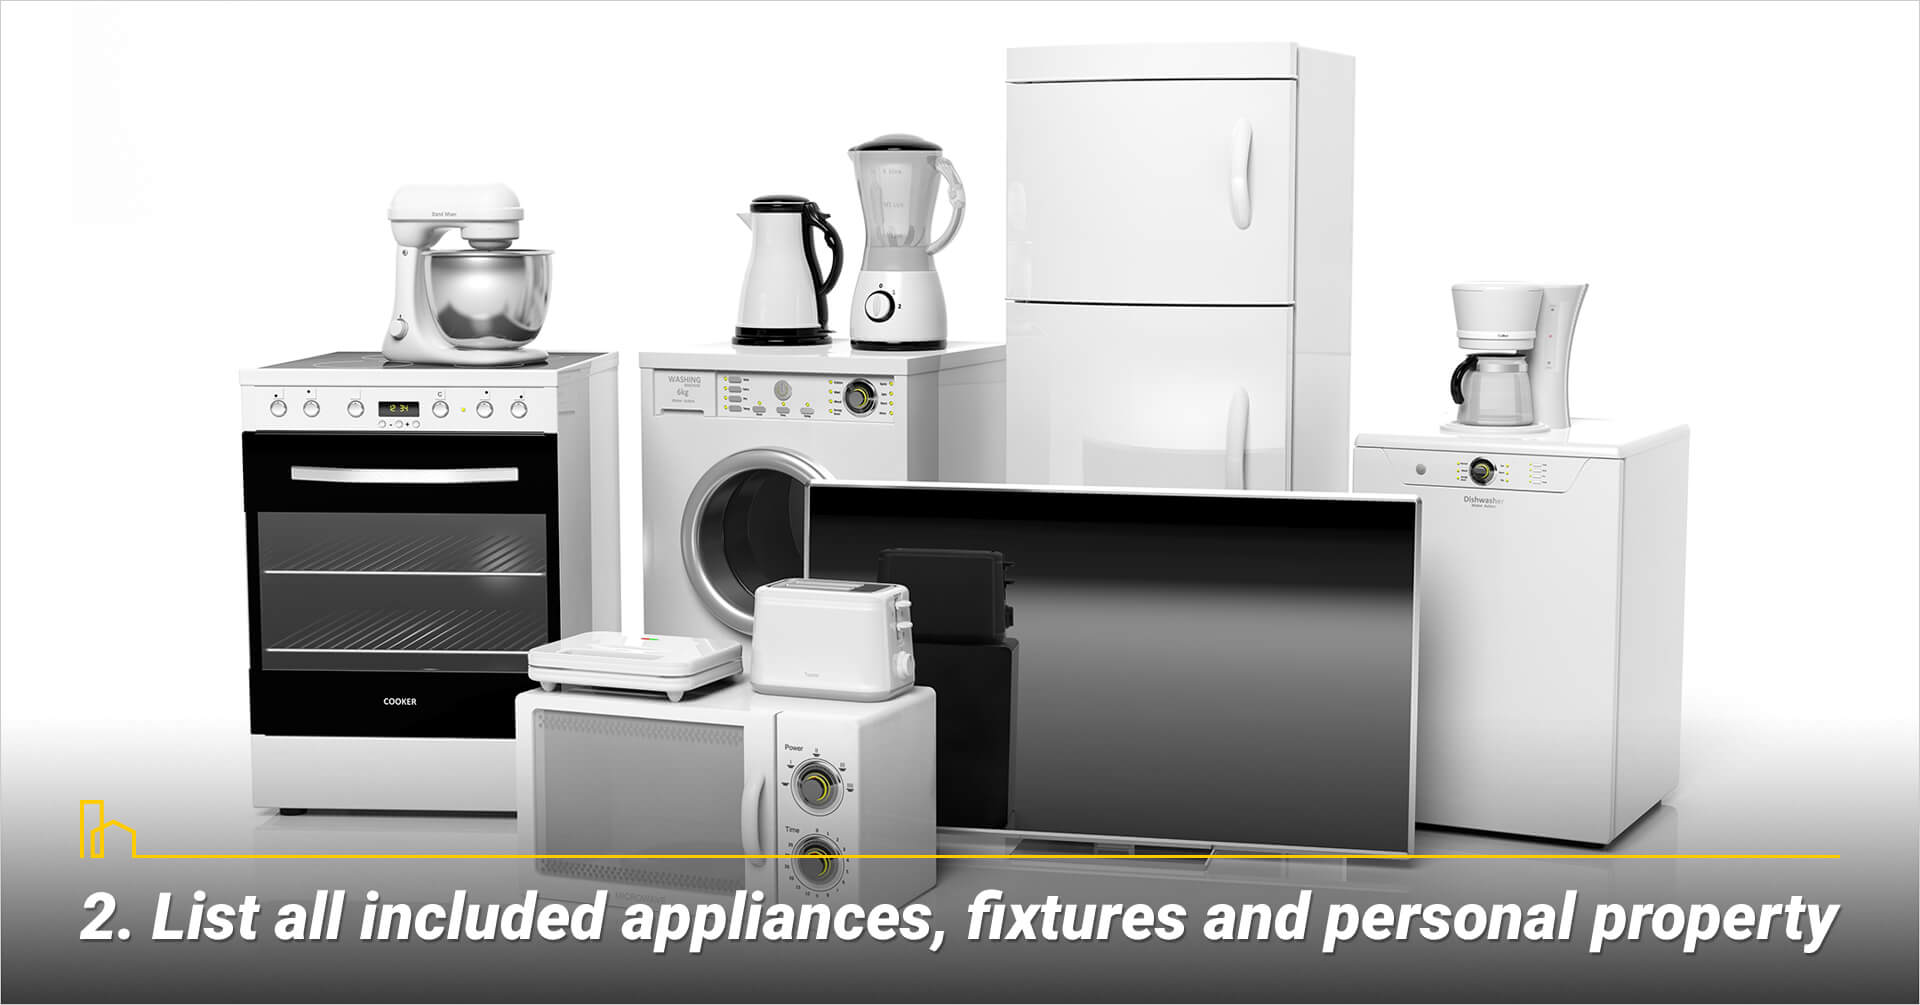 List all included appliances, fixtures and personal property